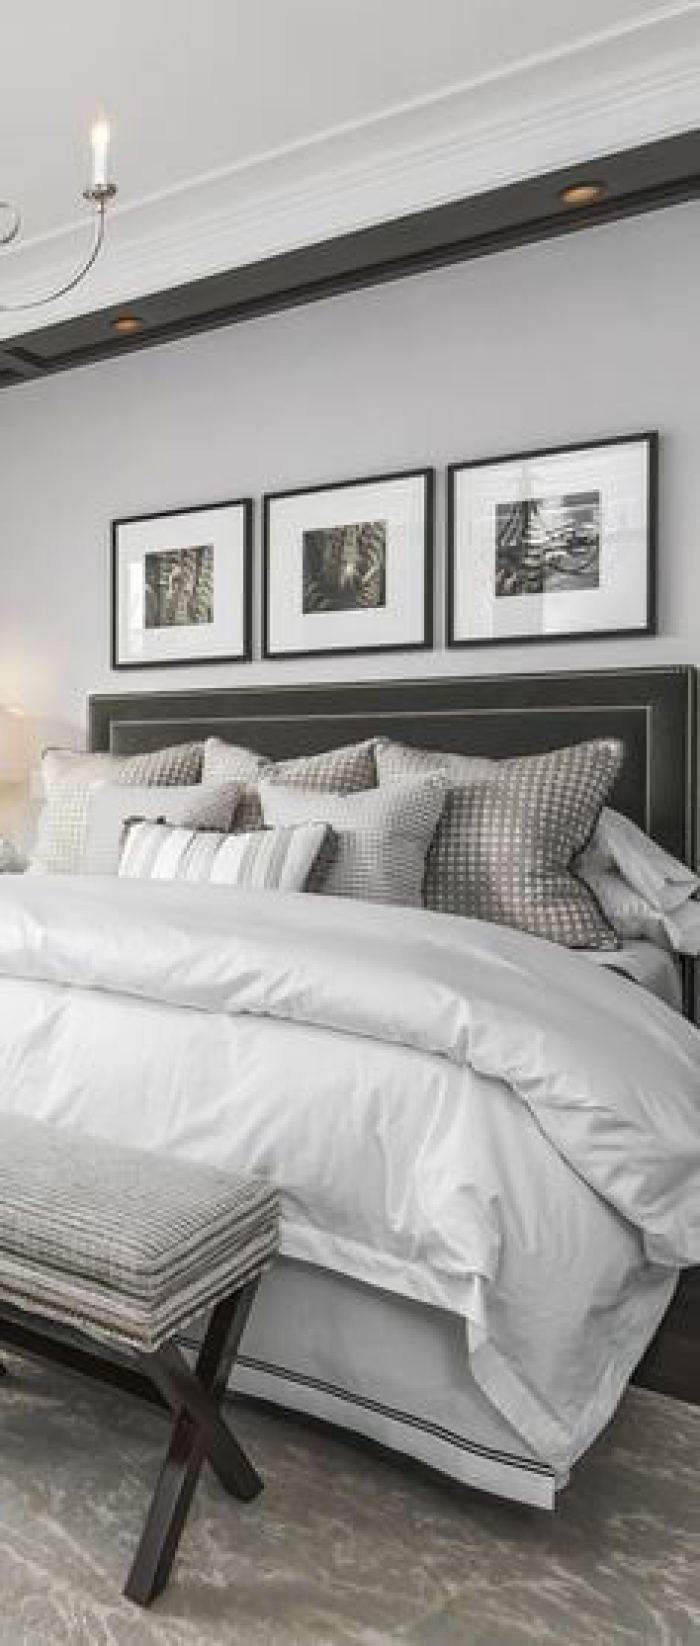 small master bedroom ideas with king size bed - 19. Classic Master Bedroom Minimal Decor - Harptimes.com